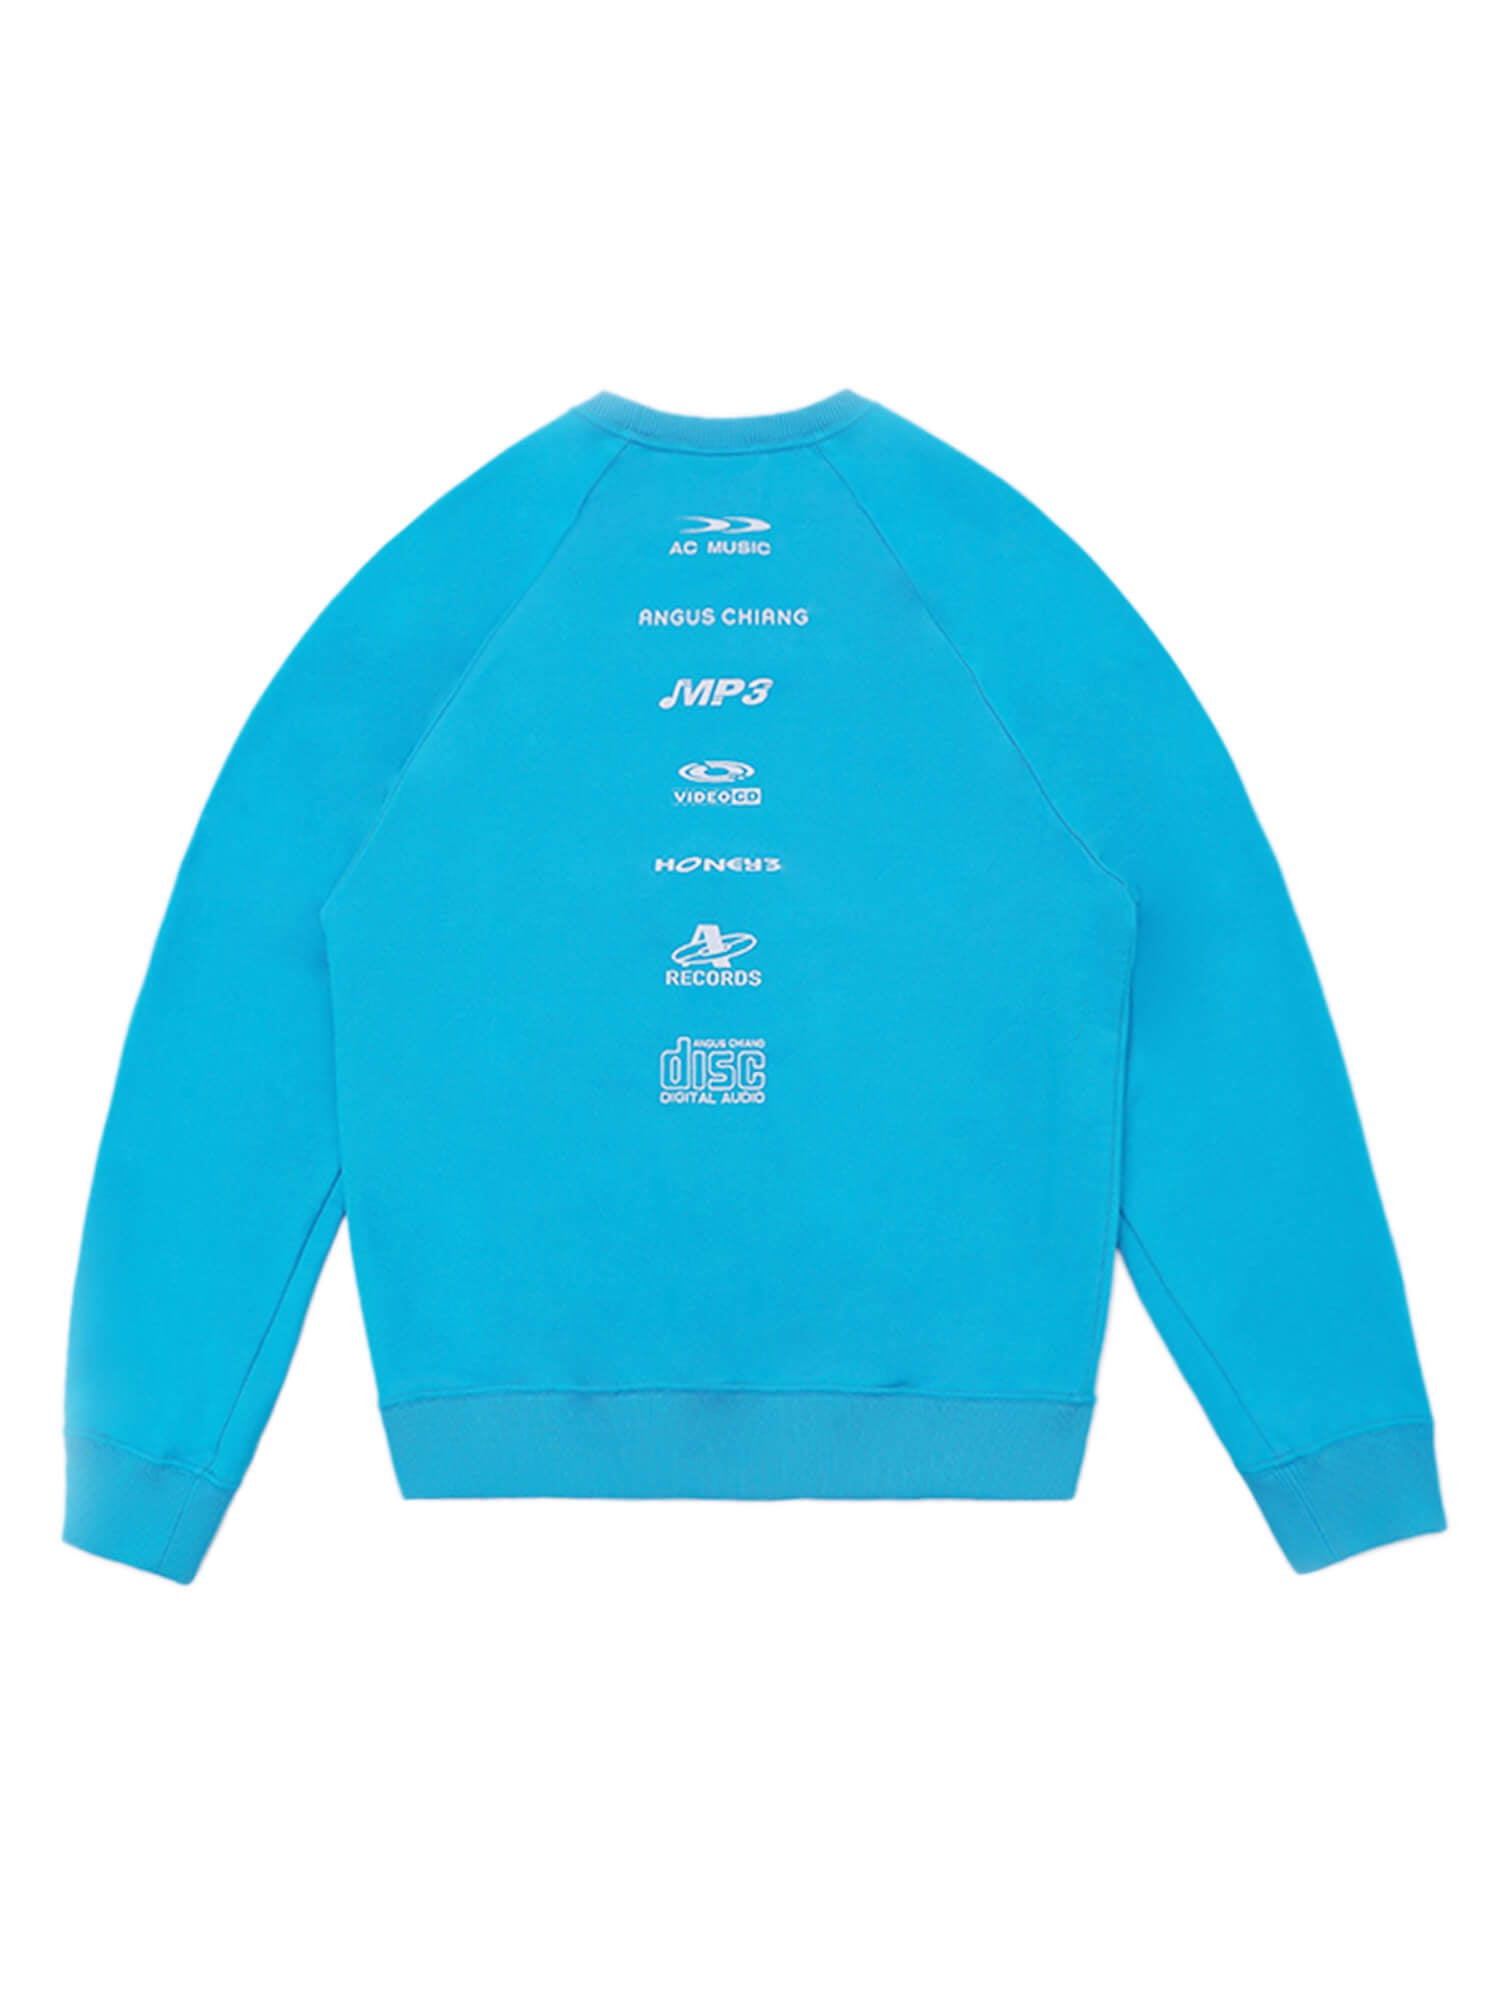 NEW RELEASES LONG SLEEVE SWEATER